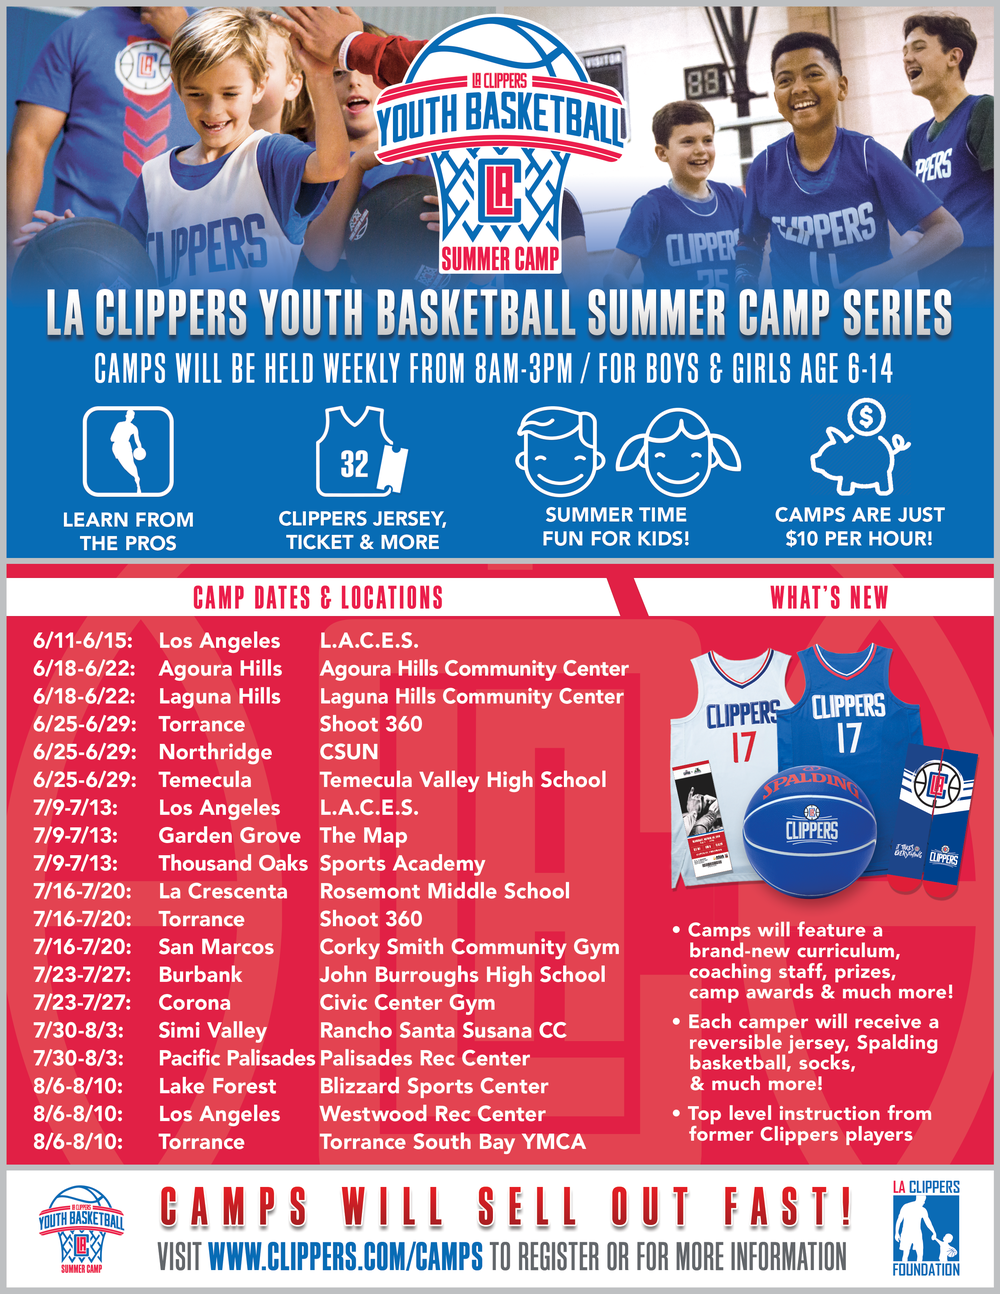 SummerCamp-Flyer-Foundation.png